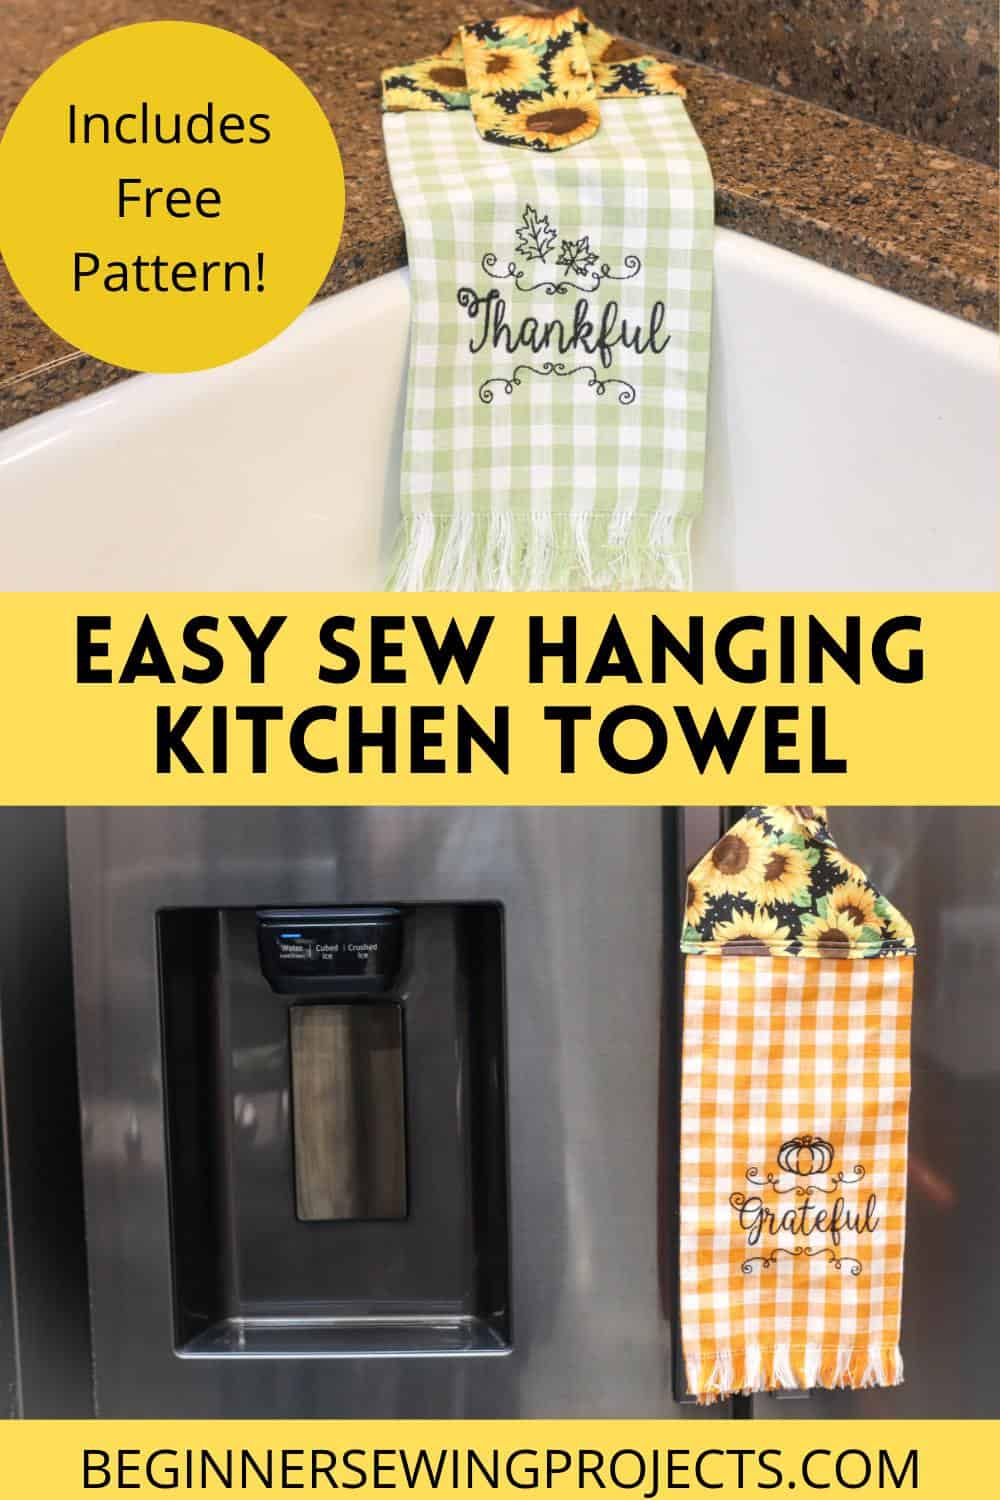 Easy Sew Hanging Kitchen Towel With Free Pattern